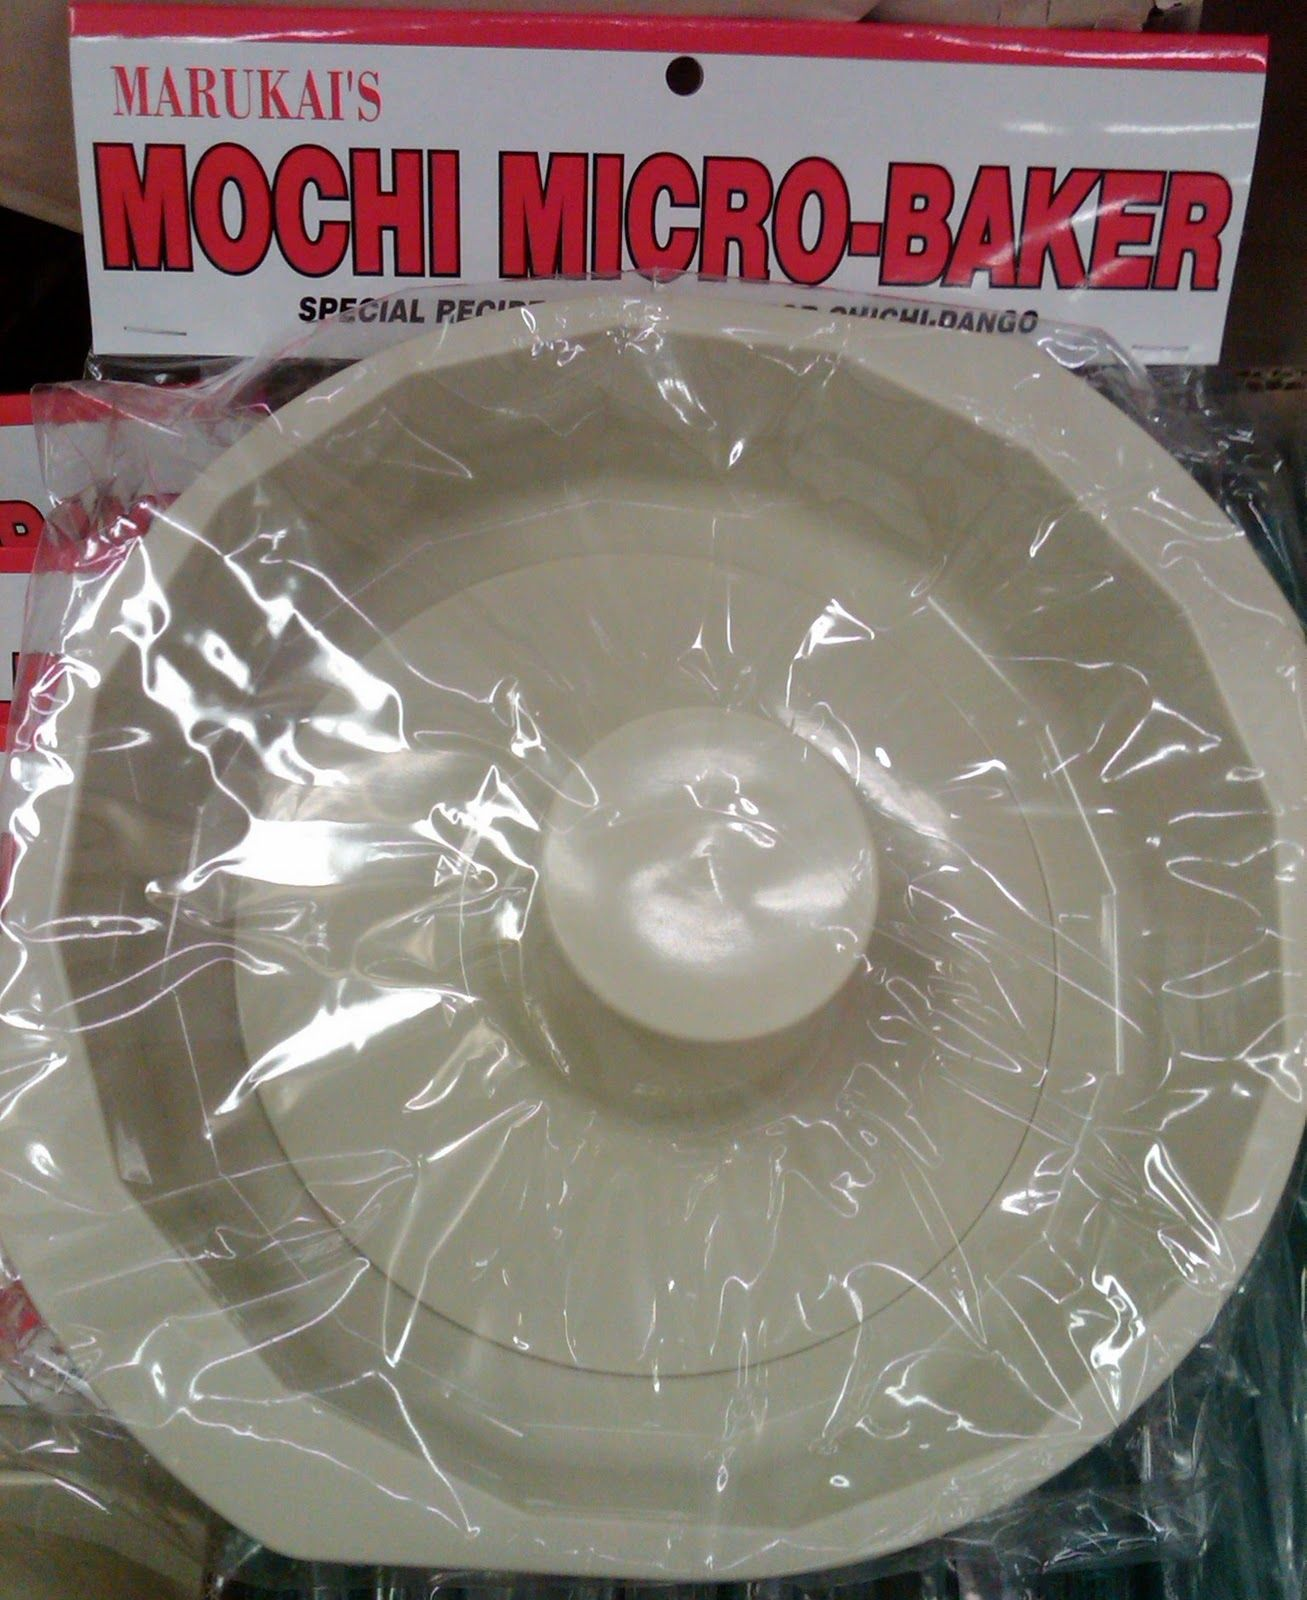 We love mochi, especially Chi Chi Dango! Marukai's Mochi